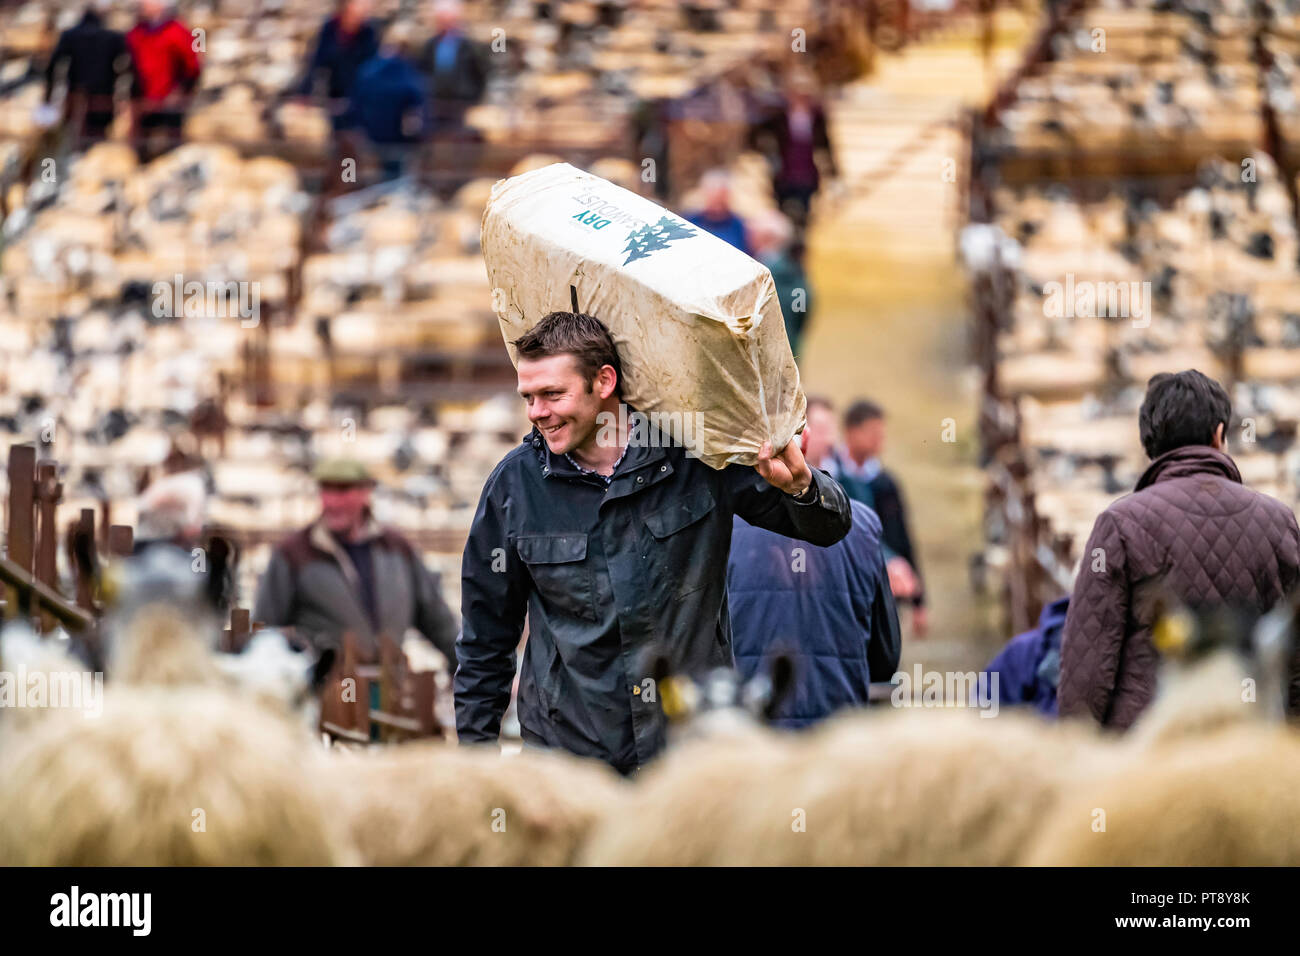 Lazonby, Penrith, Cumbria, England, UK. 3rd October 2018. The largest sheep sale in the North of England, known as the Alston Moor Sale, takes place a - Stock Image